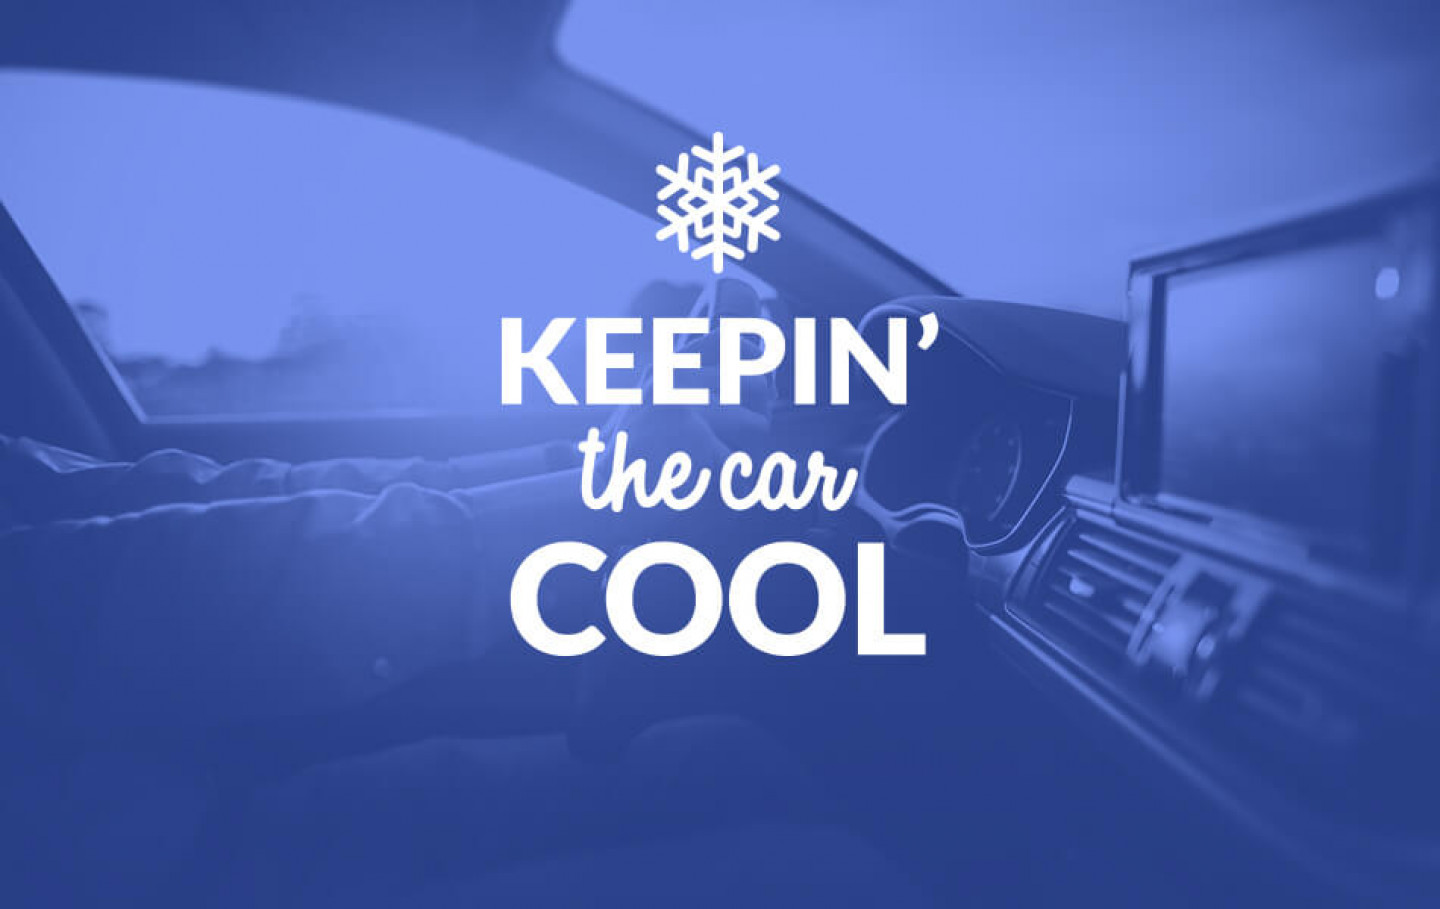 keeping-the-car-cool-summer